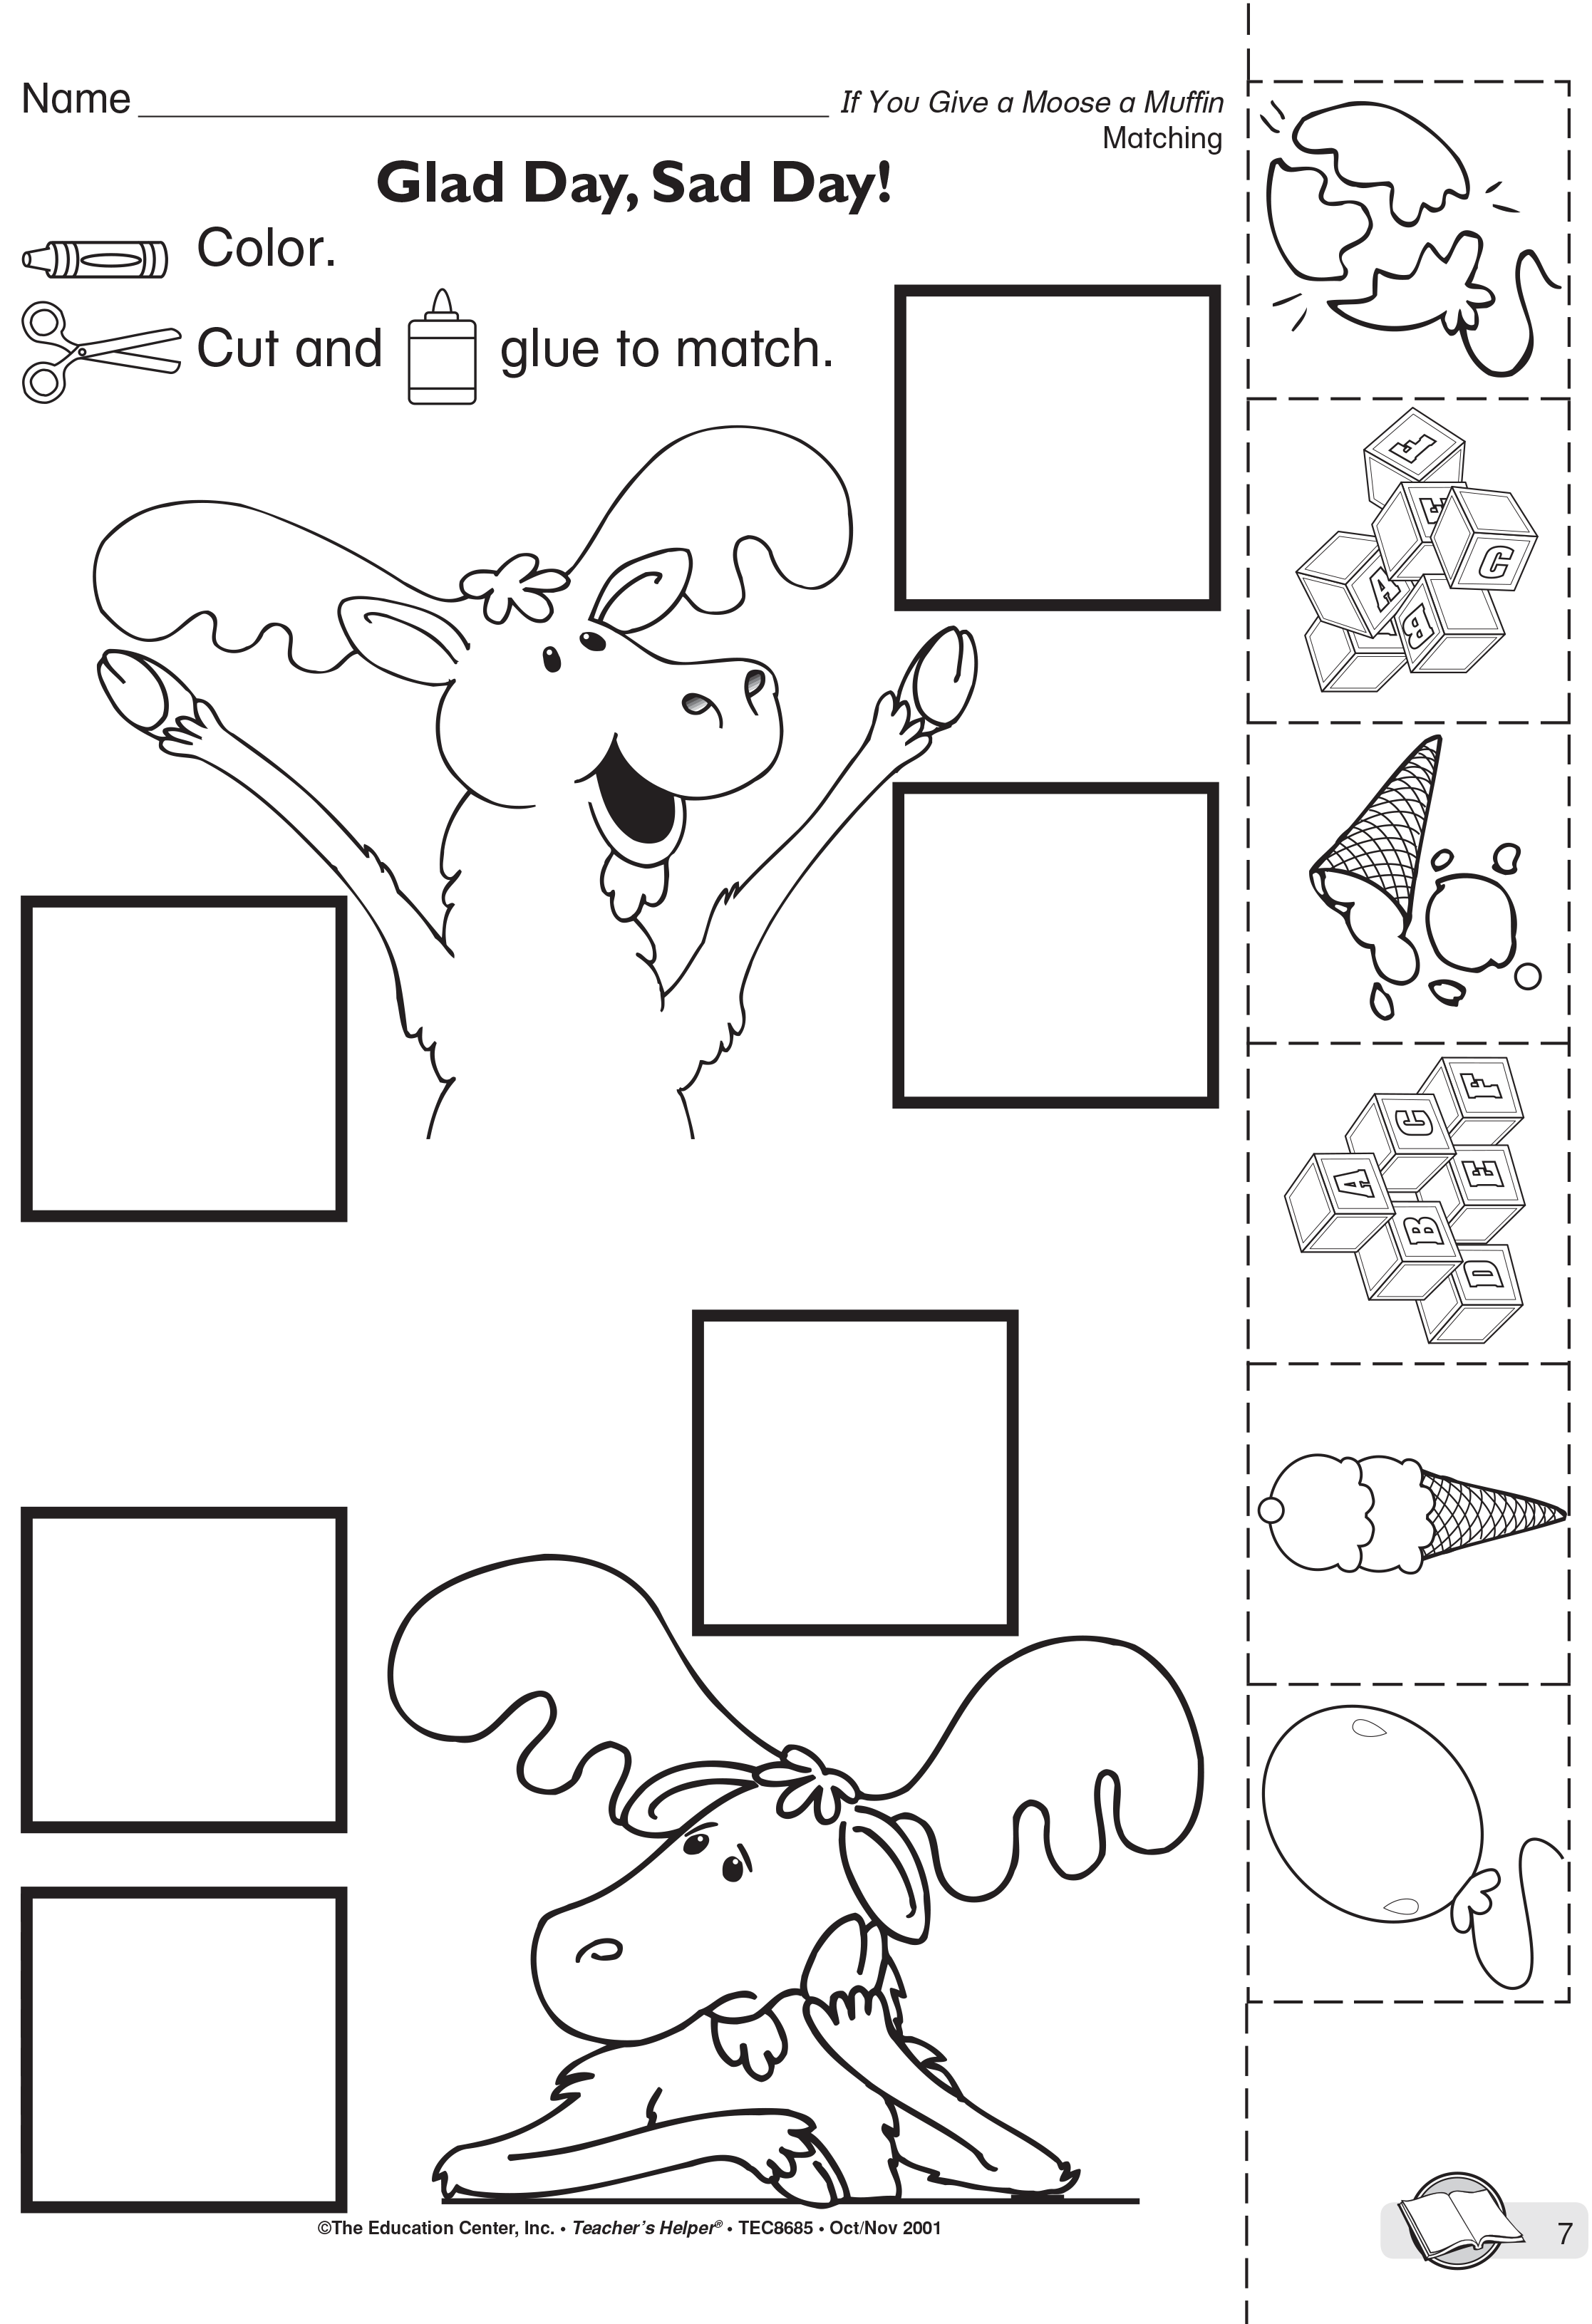 If You Give A Moose A Muffin Coloring Page | Classroom activities ...